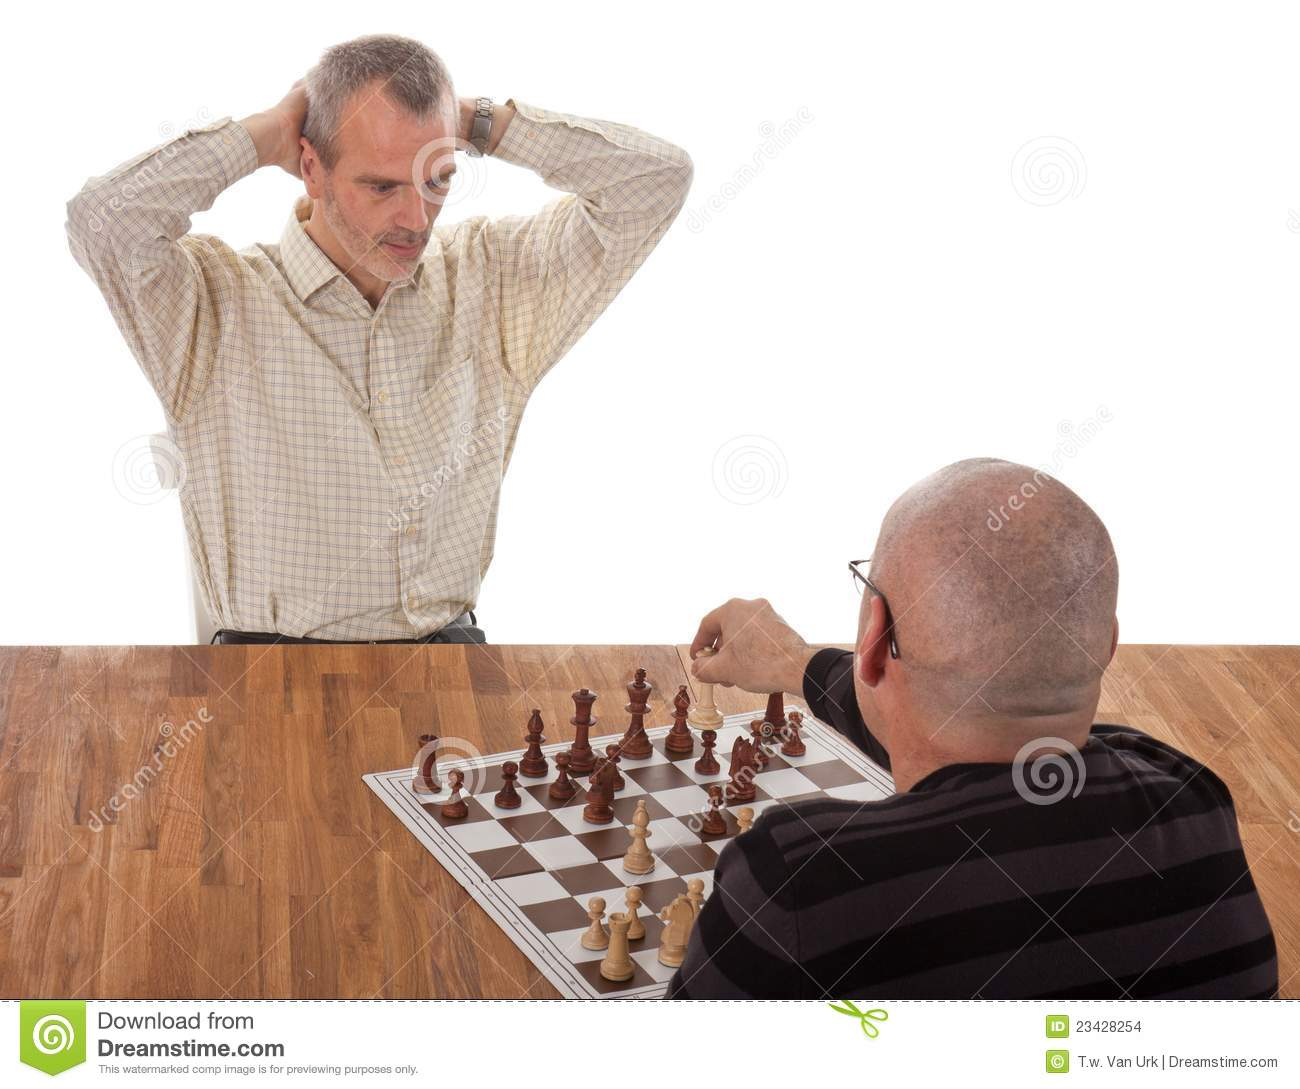 One chess player checkmates the other